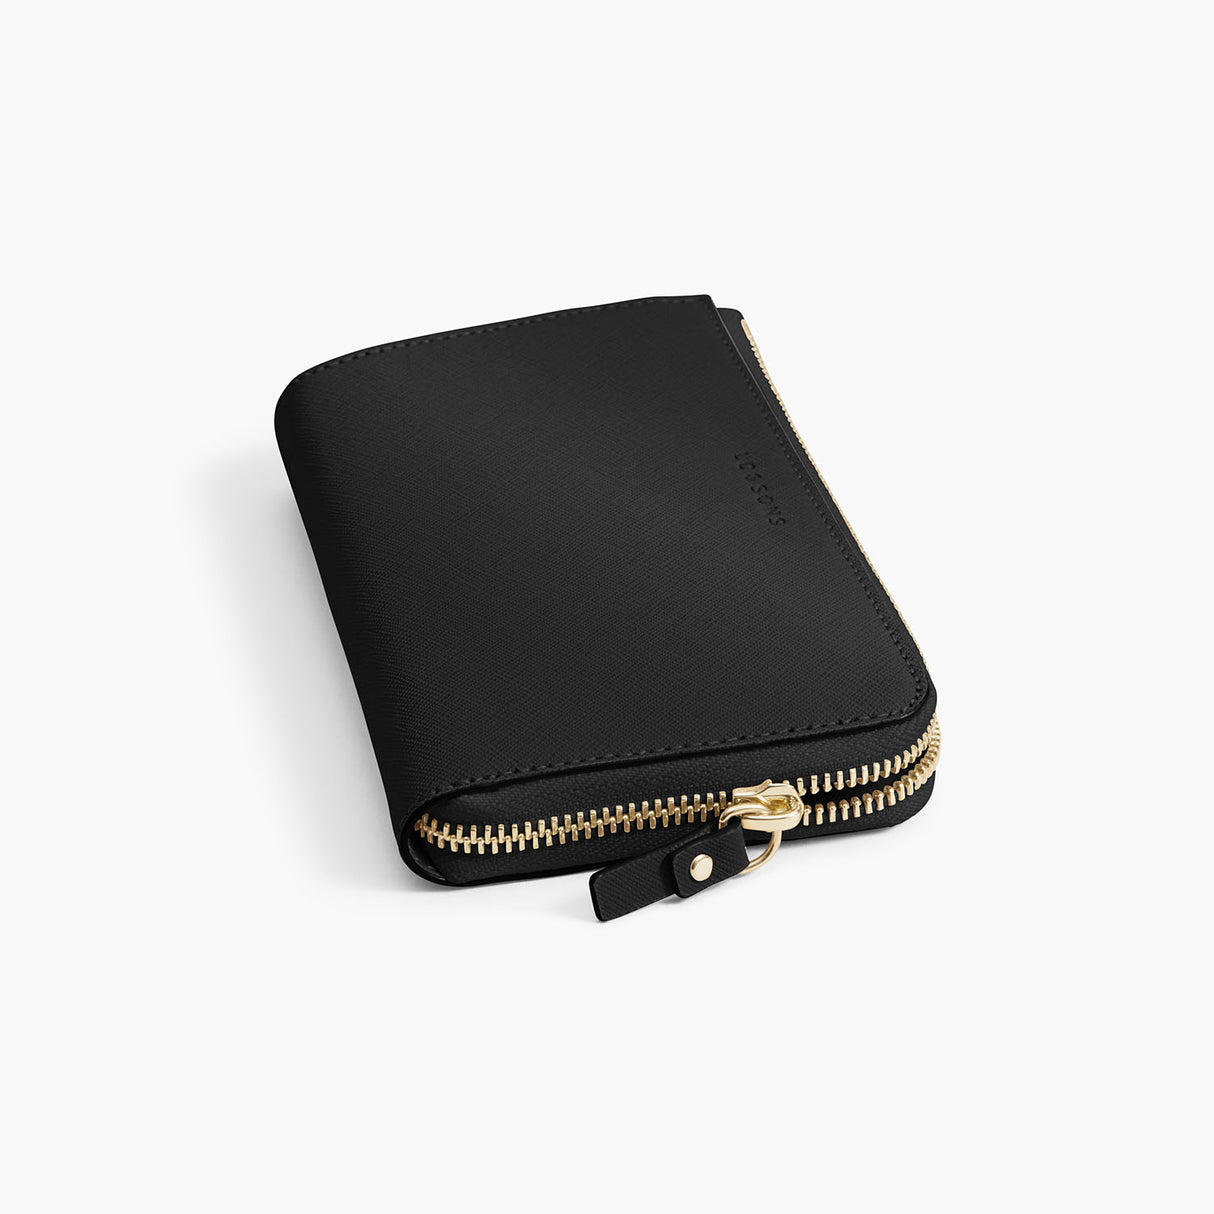 Zipper Detail - The Leather Wallet - Saffiano Leather - Black / Gold / Grey - Small Accessory - Lo & Sons